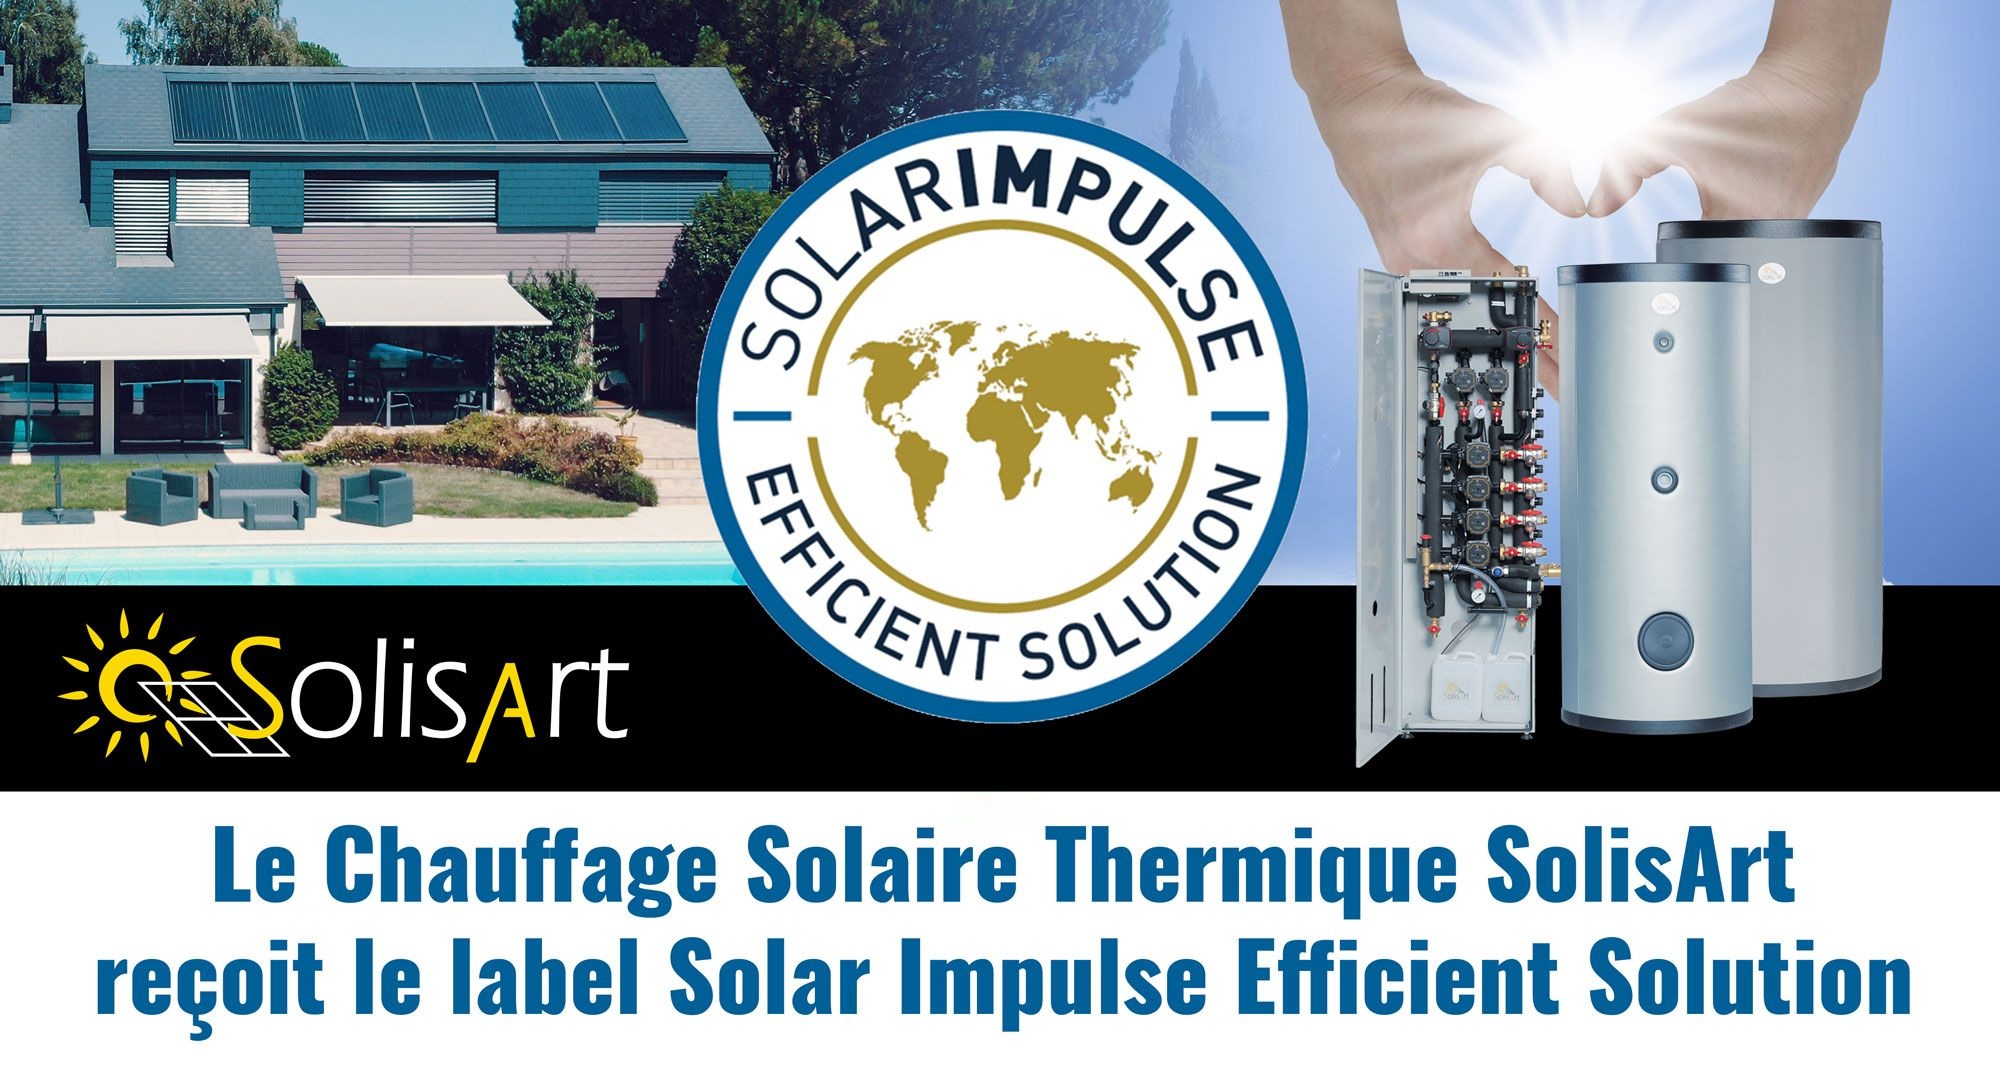 solar-impulse-label-solisart